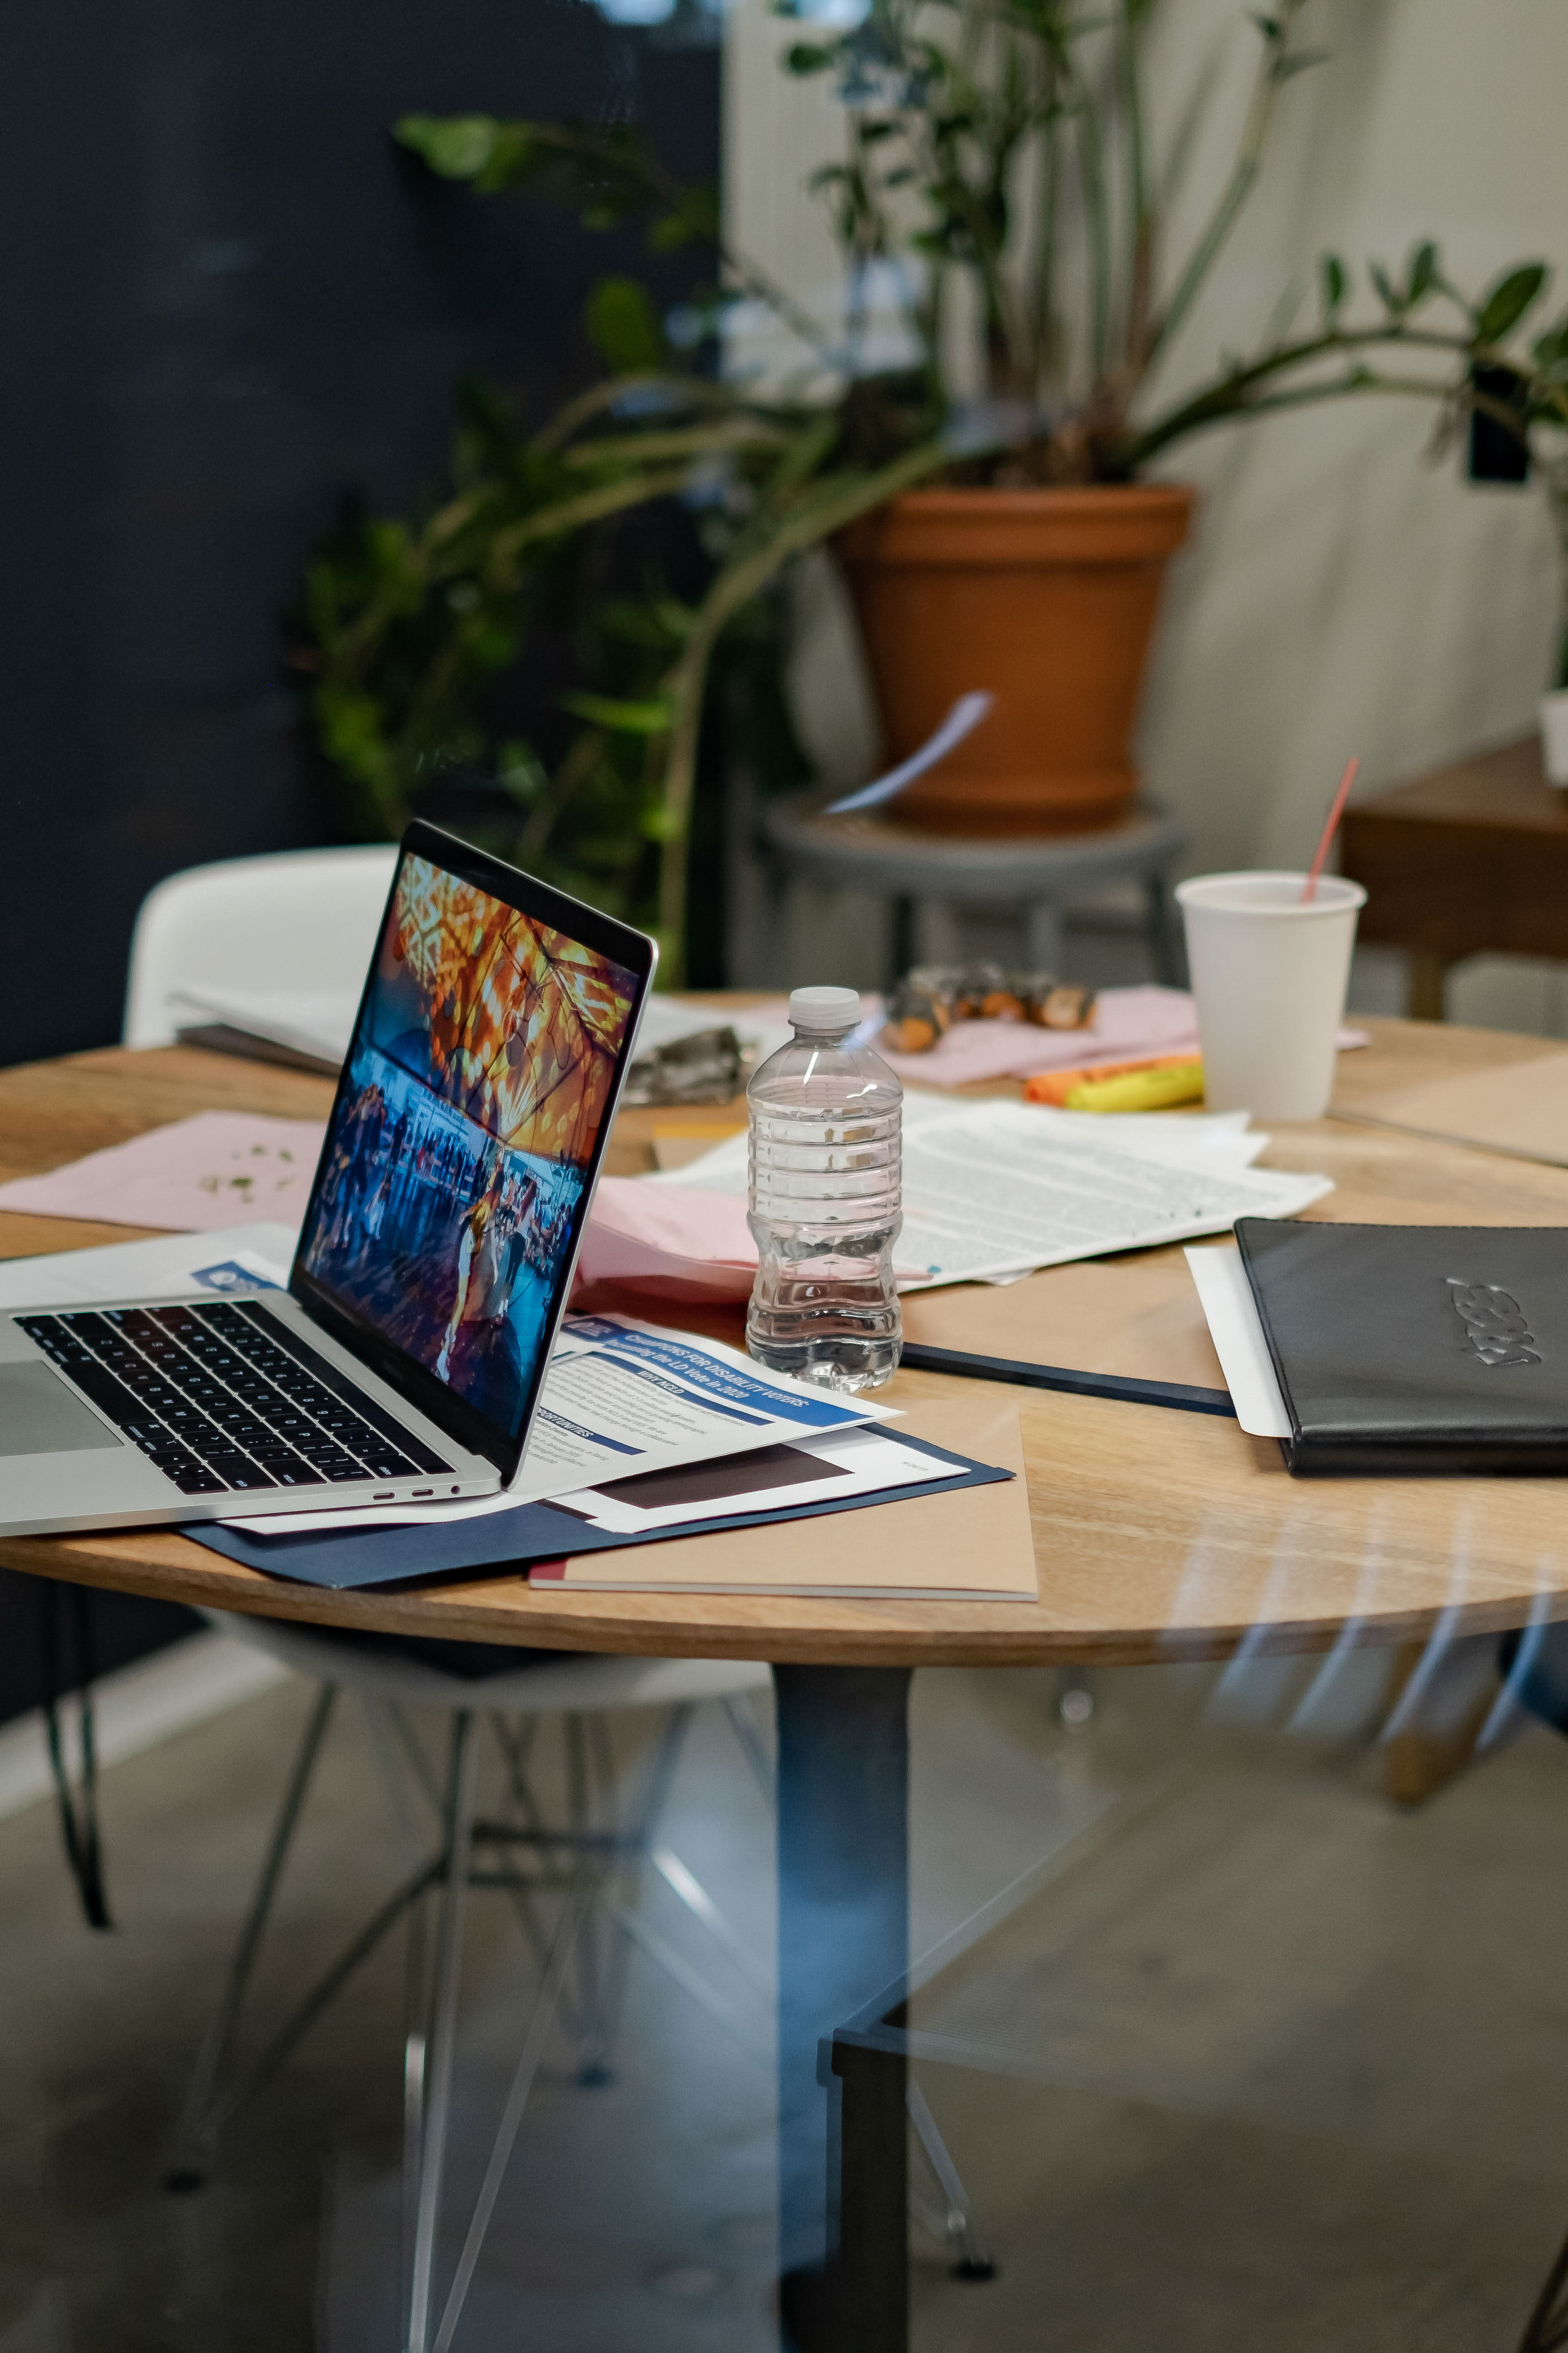 A laptop and notebook in an office space